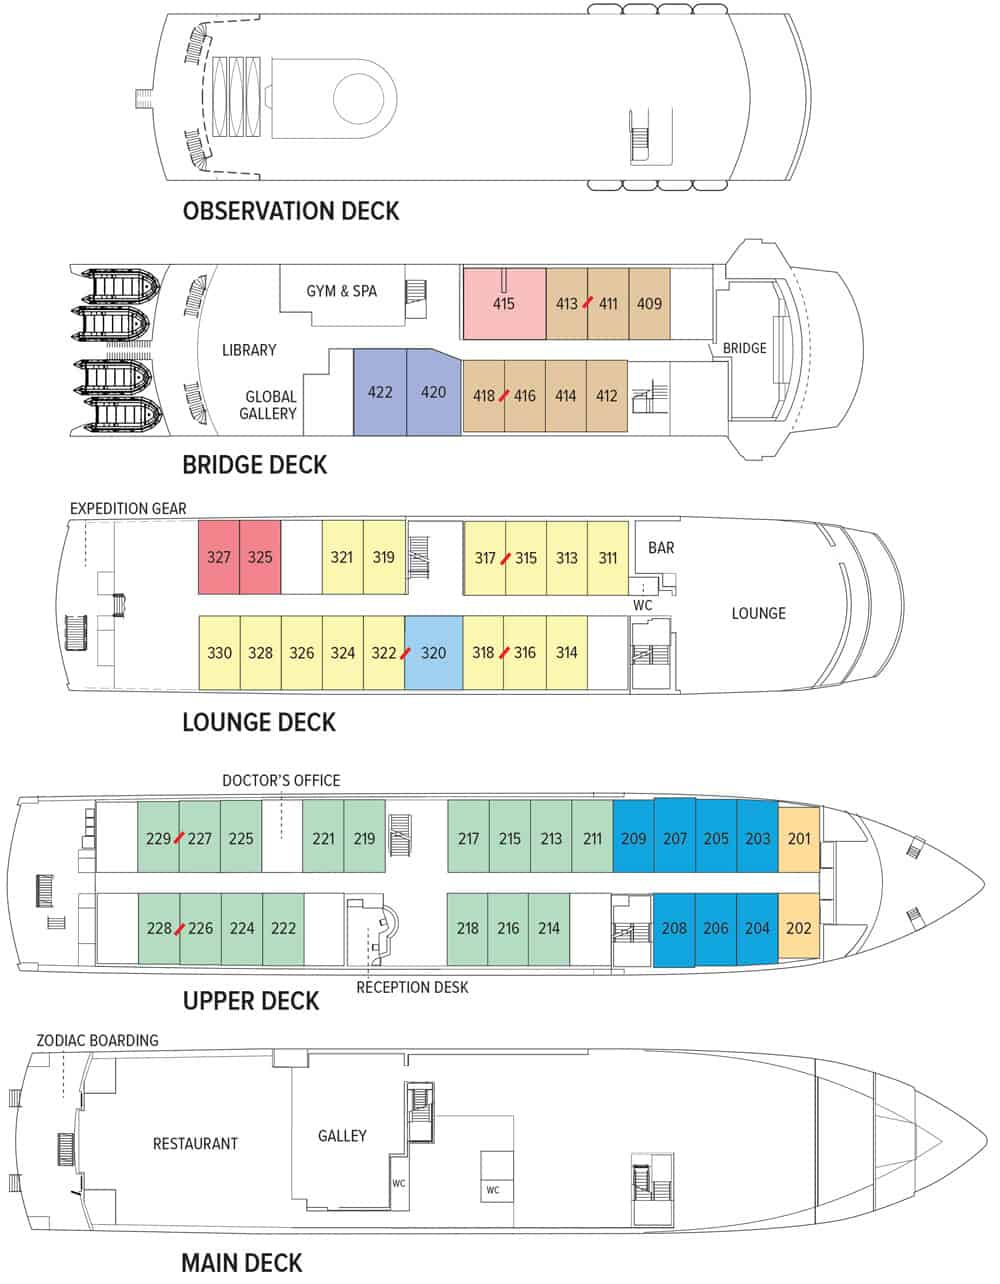 Deck plan showing Main Deck, Upper Deck, Lounge Deck, Bridge Deck and Observation Deck of Endeavour II Galapagos Islands expedition ship